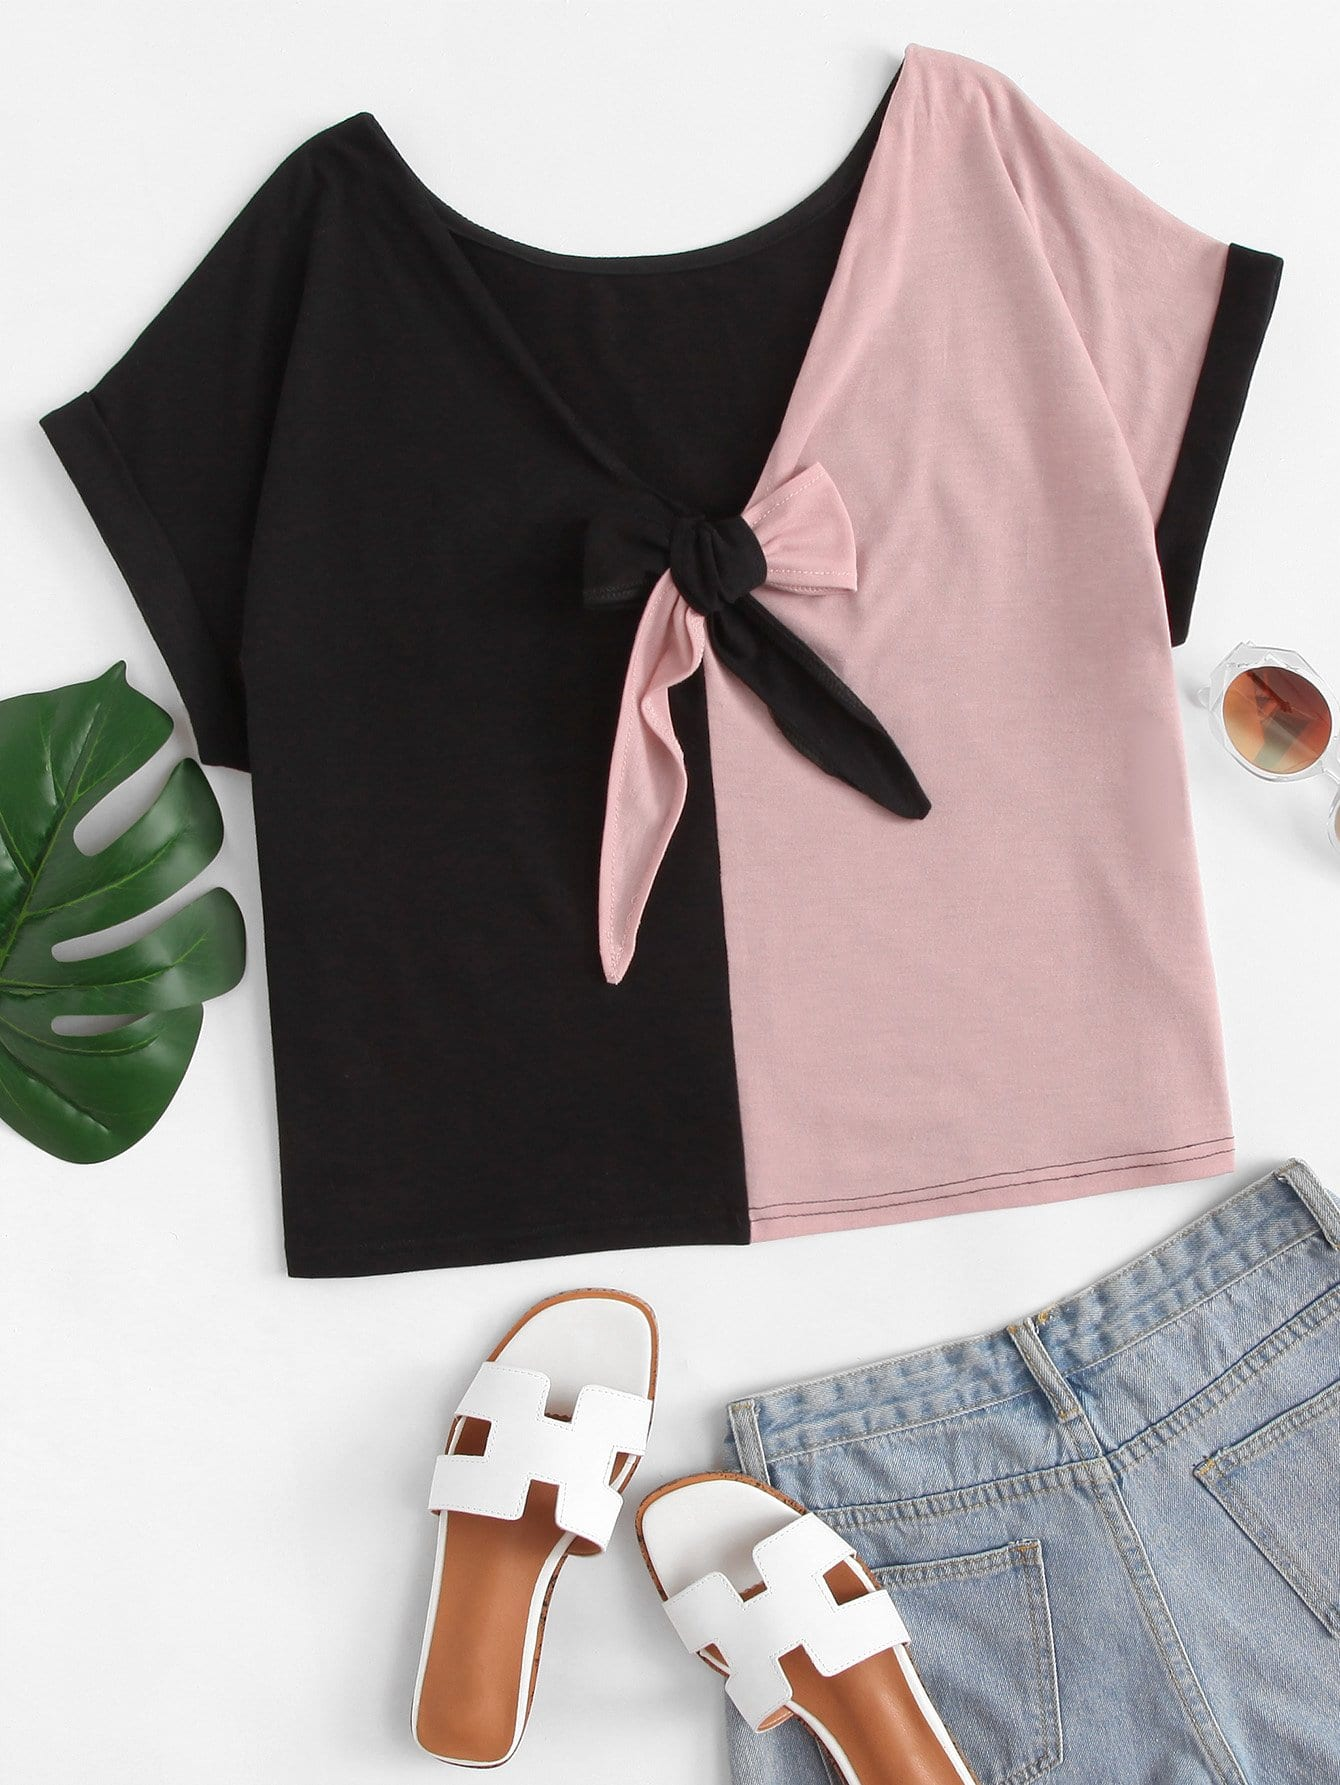 Knot Front Colorblock Tee knot front tee